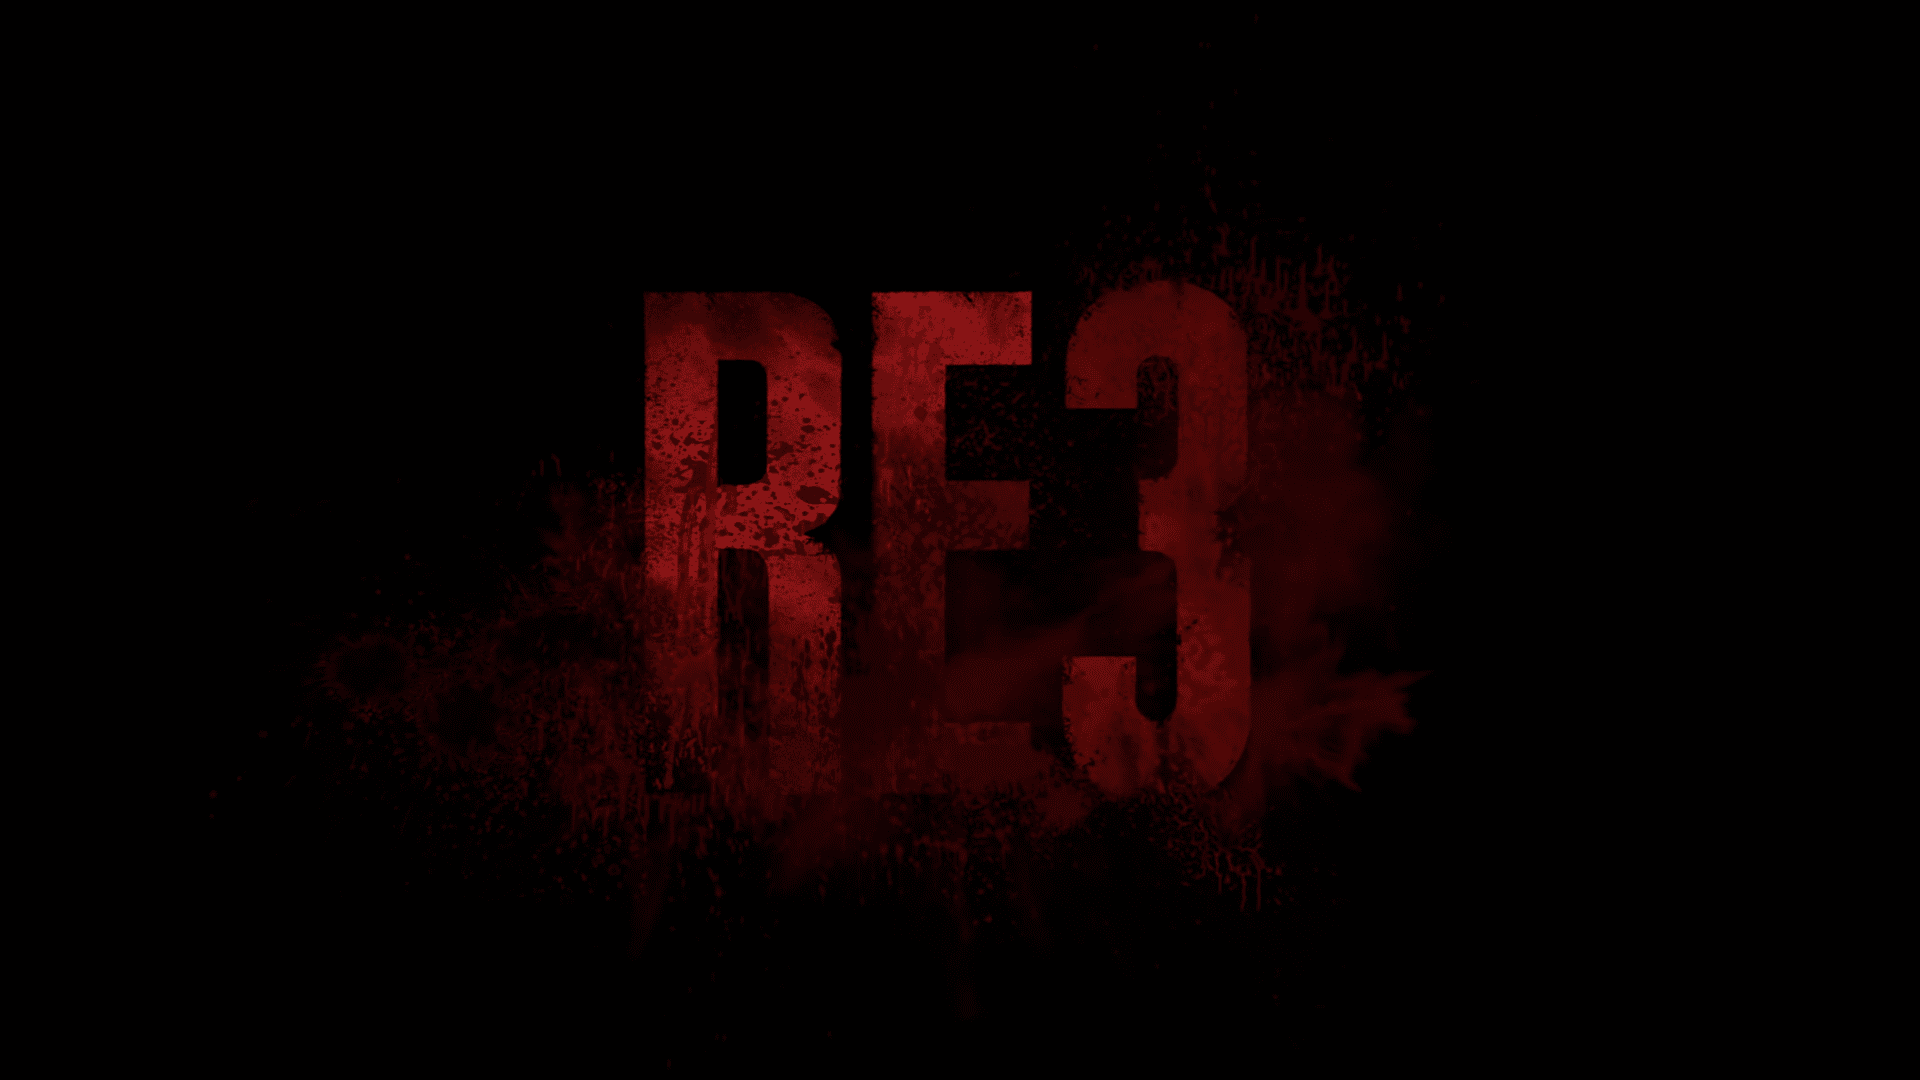 resident evil 3 remake nemesis wallpaper